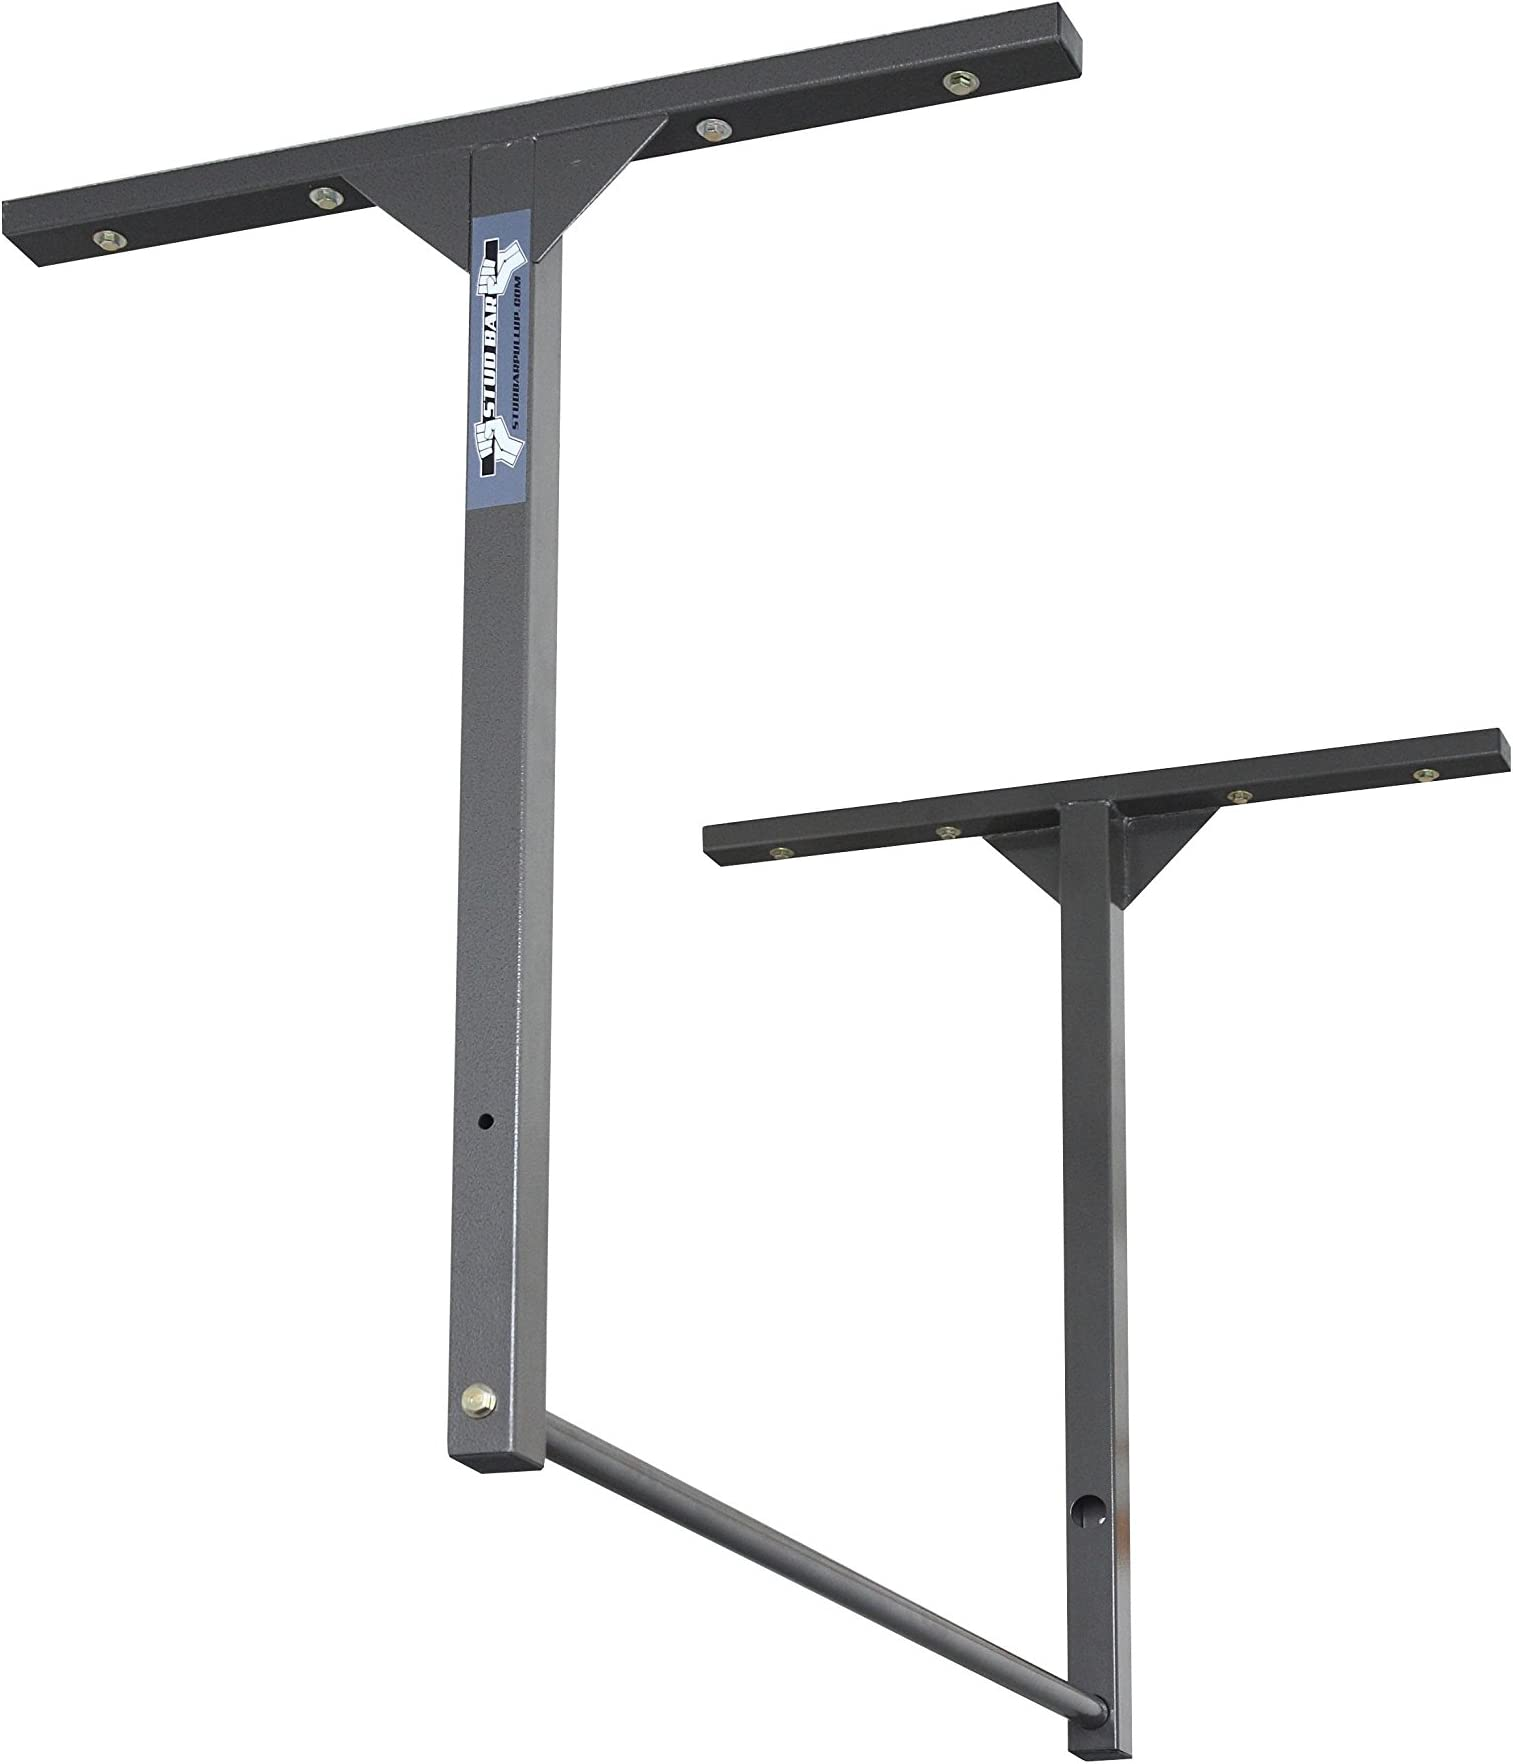 Stud Bar Ceiling or Wall Mountable Pull Up Bar  sc 1 st  Amazon.com & Pull-Up Bars | Amazon.com pezcame.com